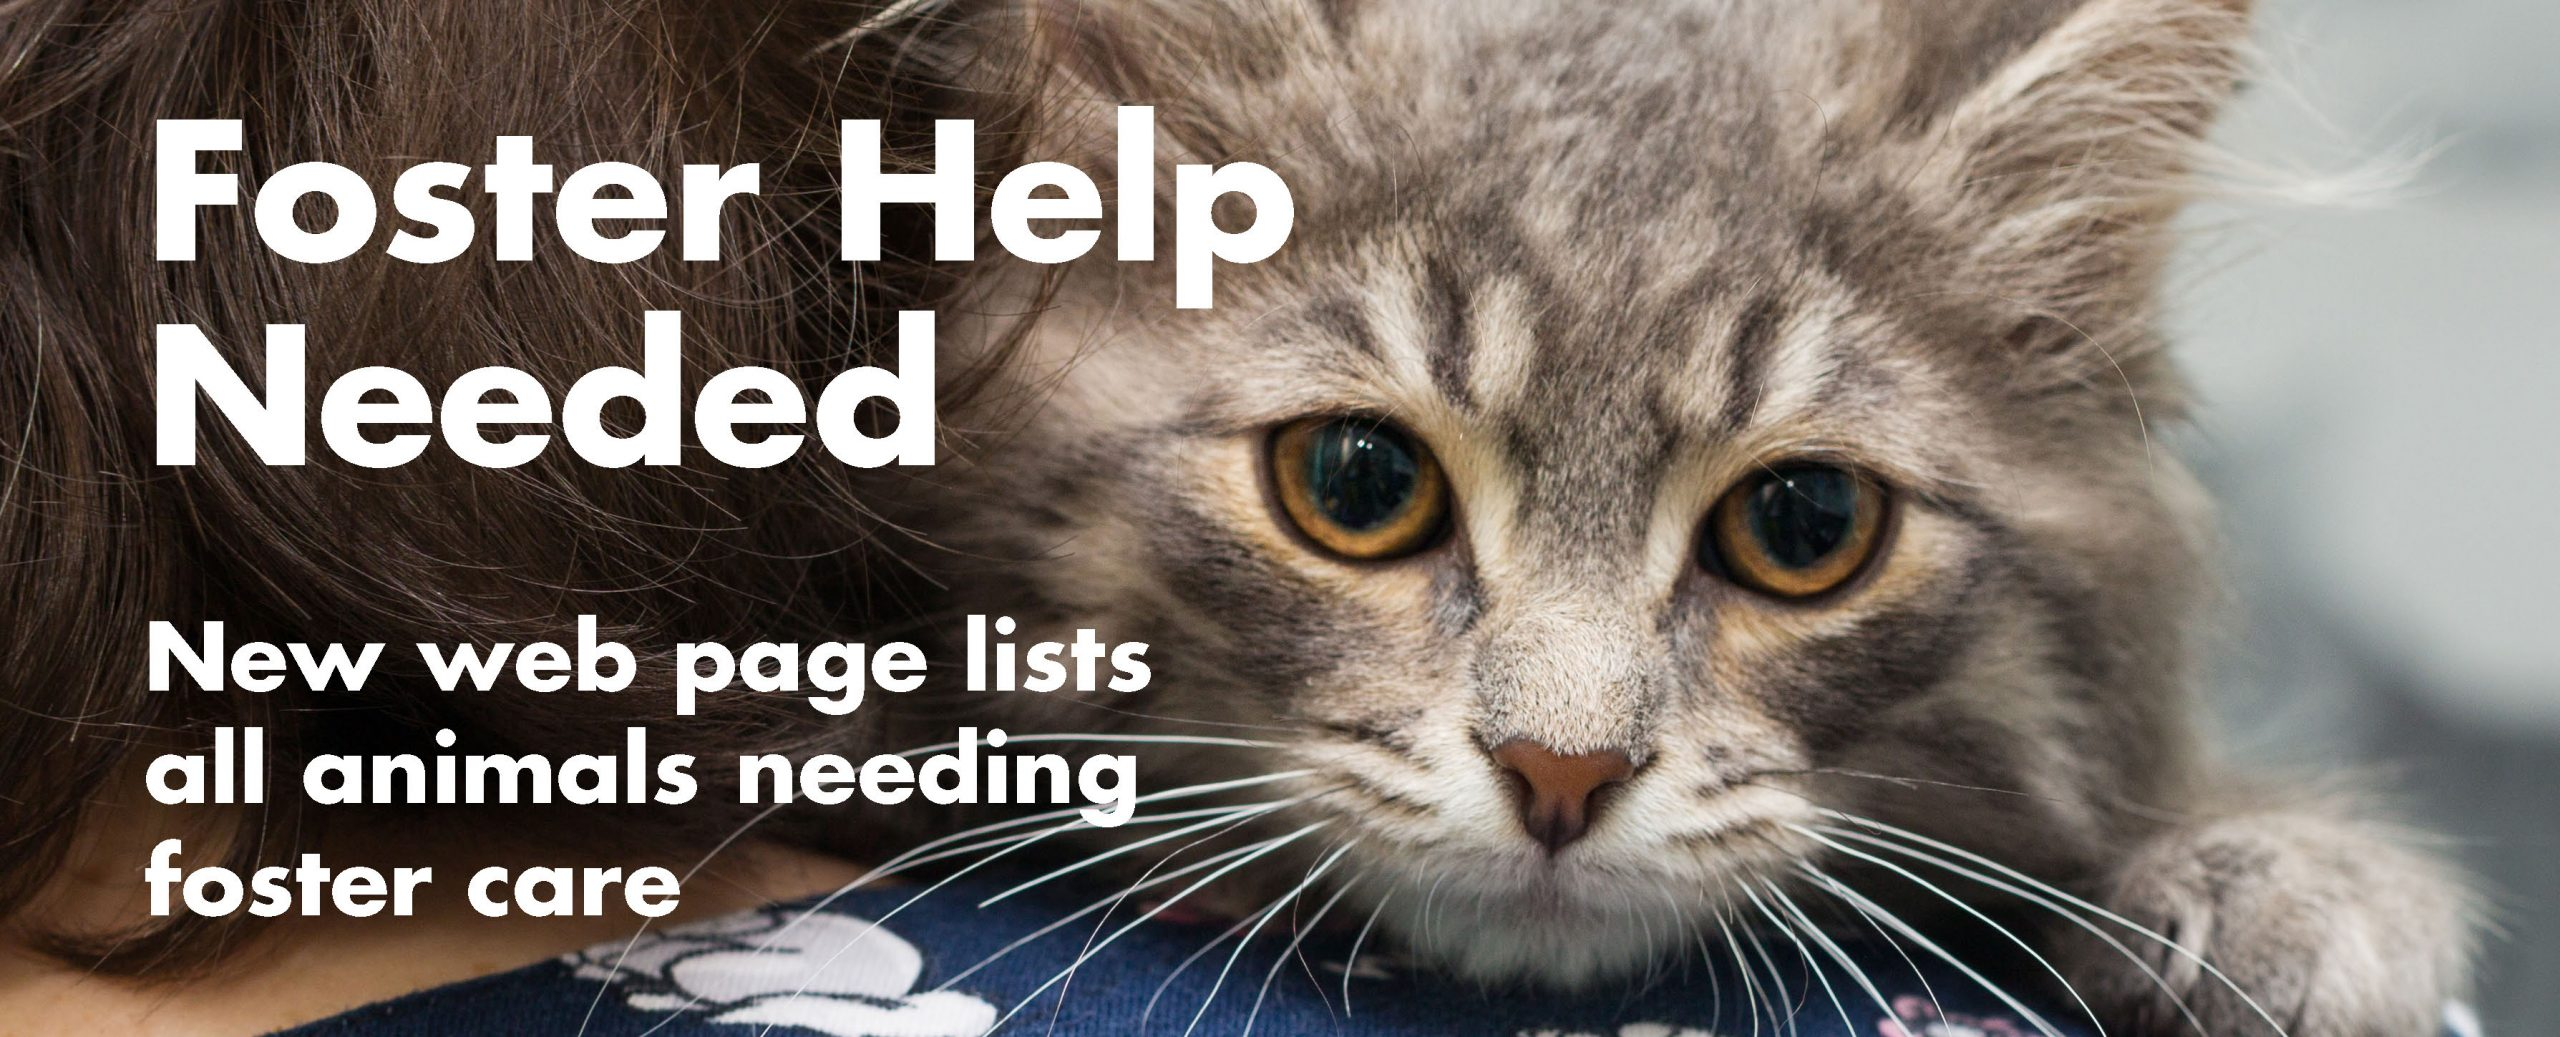 Foster Help Needed – New web page lists animals needing foster care